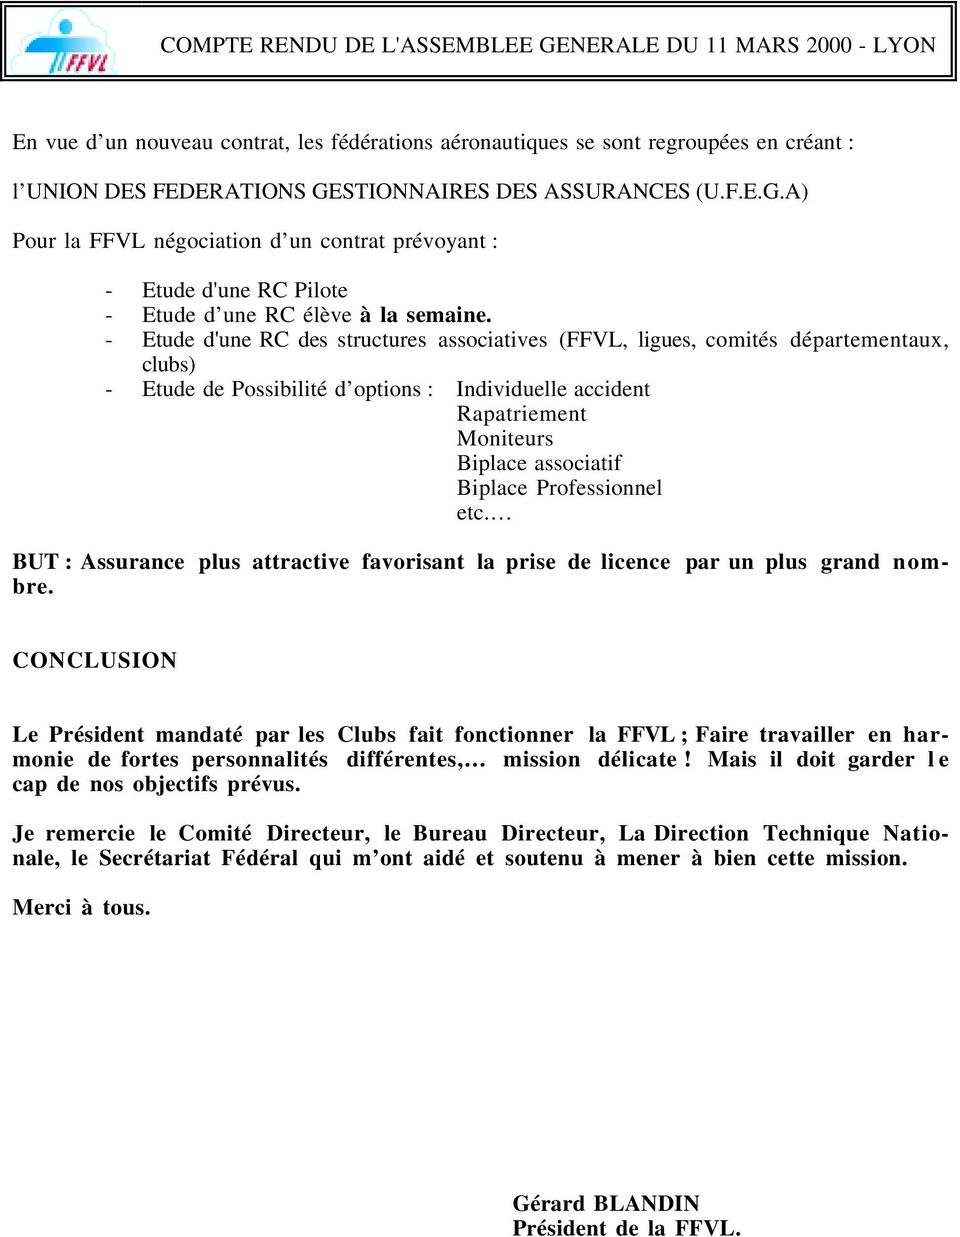 - Etude d'une RC des structures associatives (FFVL, ligues, comités départementaux, clubs) - Etude de Possibilité d options : Individuelle accident Rapatriement Moniteurs Biplace associatif Biplace